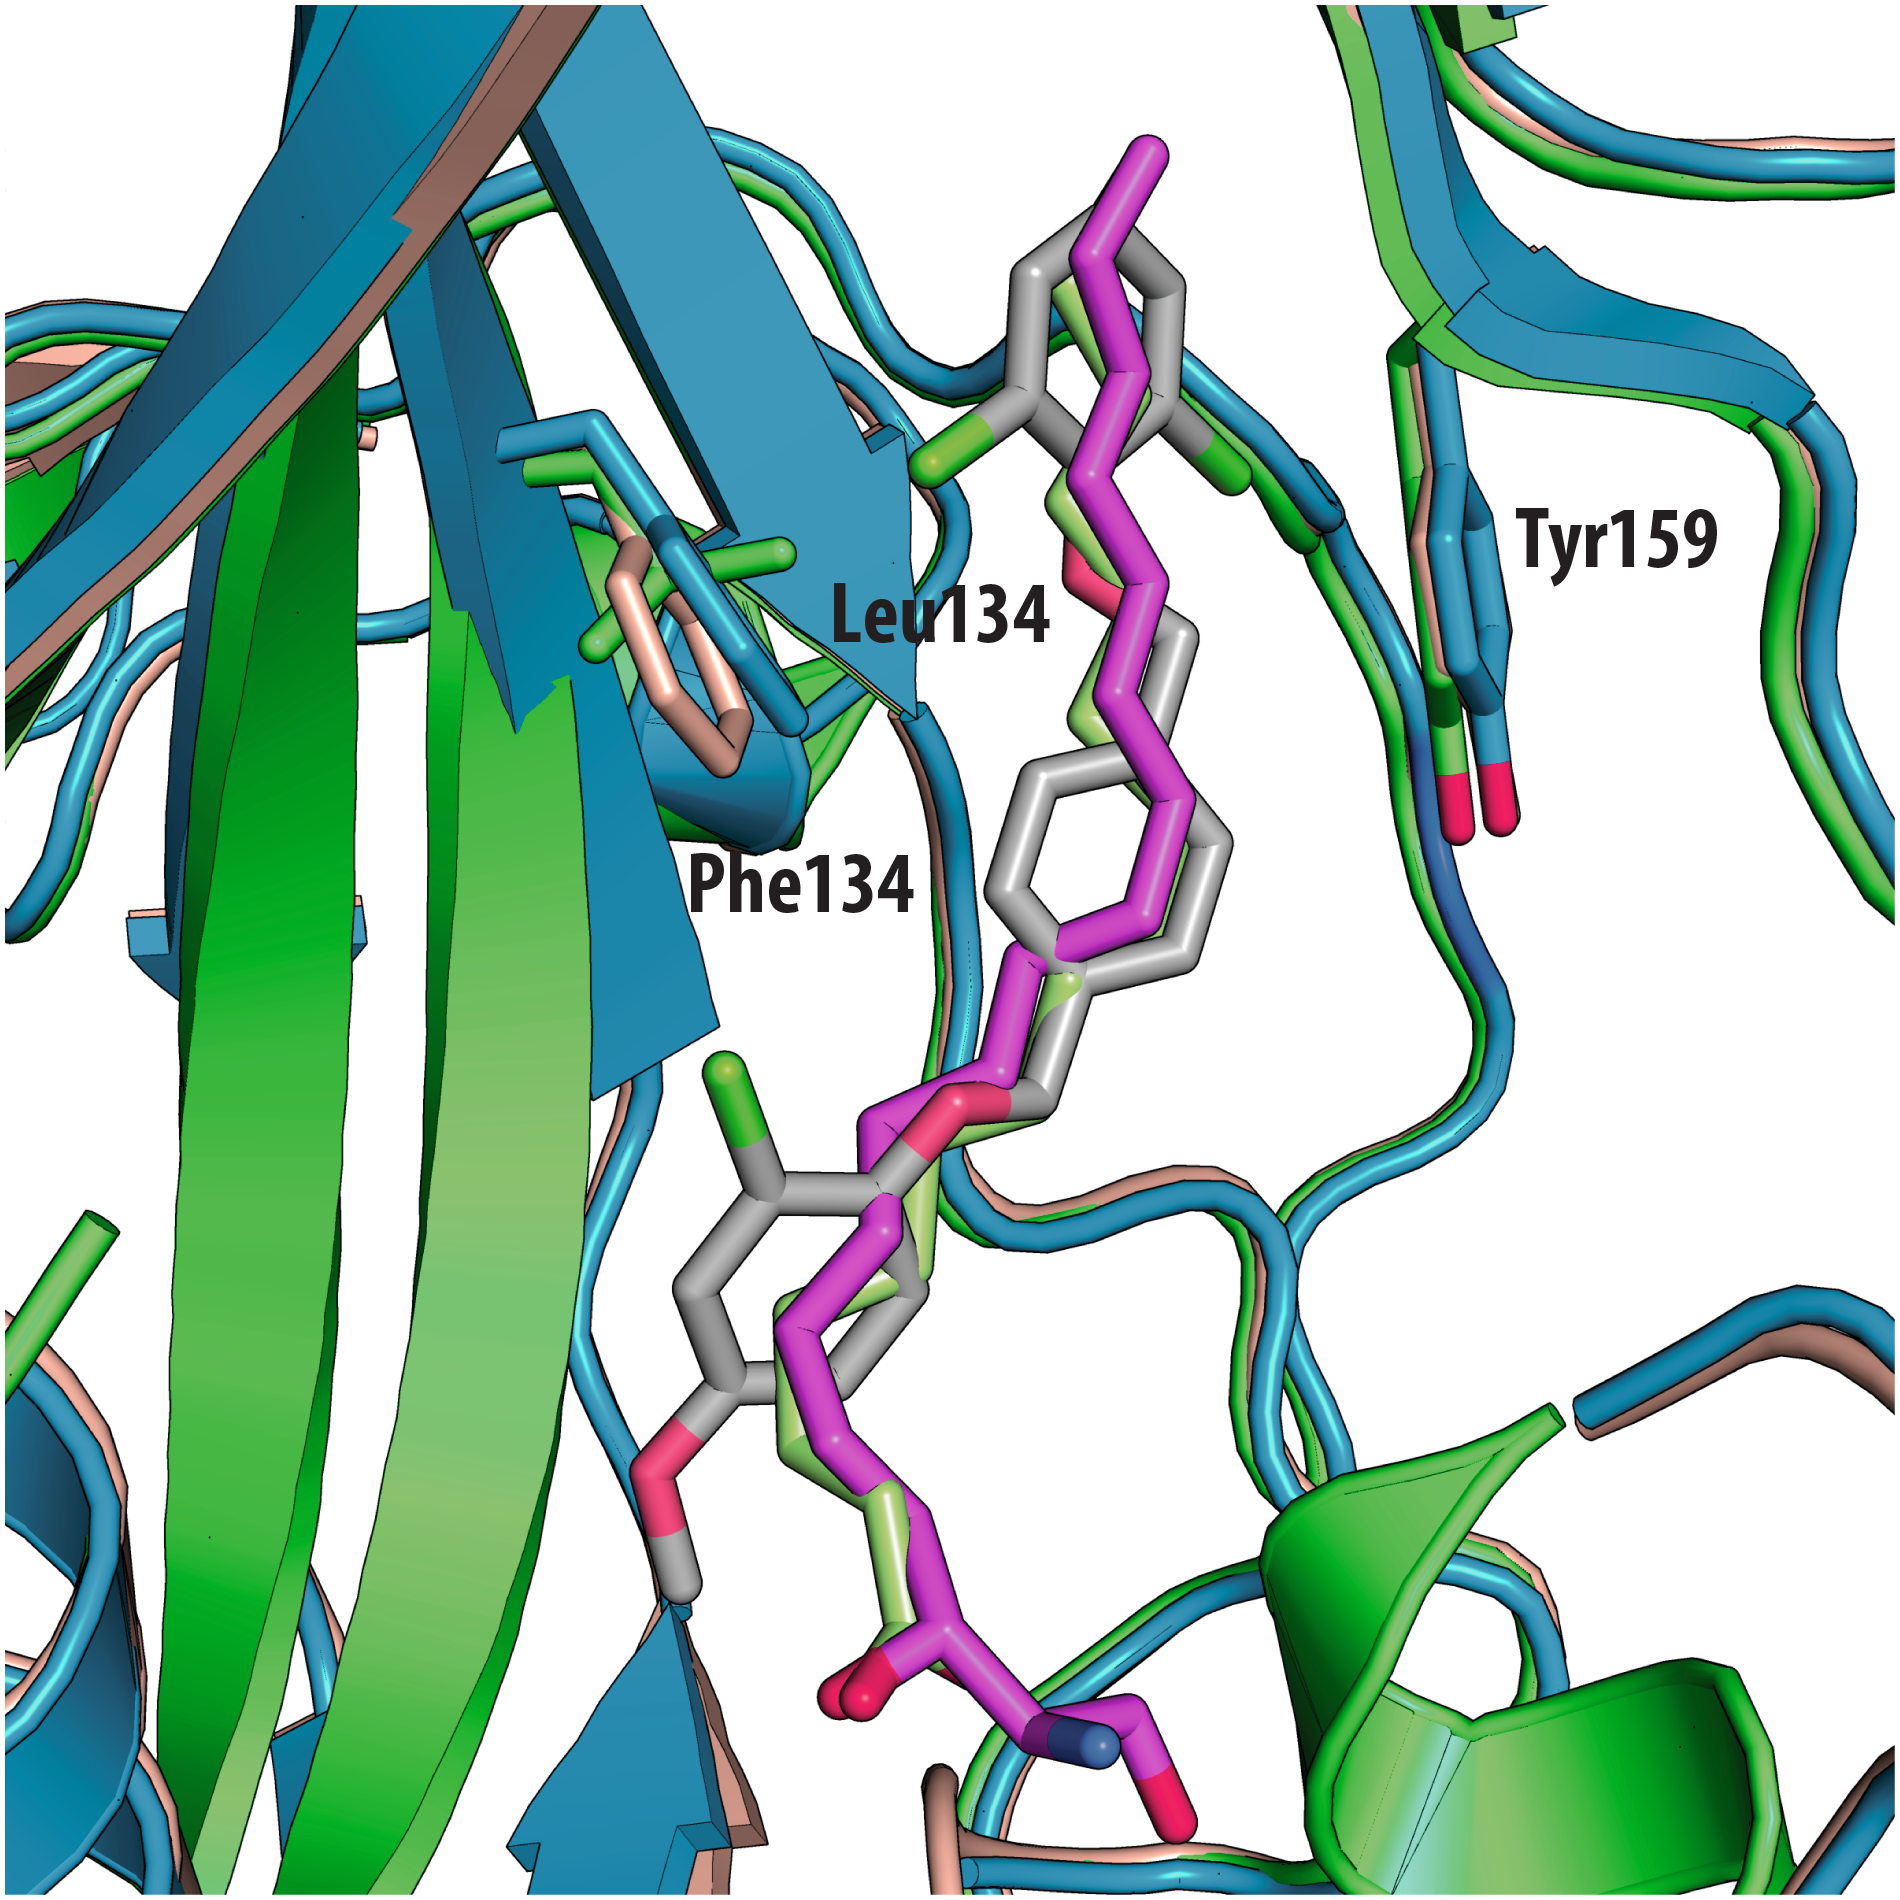 Superposition of VP1 structures of the 3 types of poliovirus (PDBid: 1HXS in green, 1EAH in light orange, 1PVC in blue).